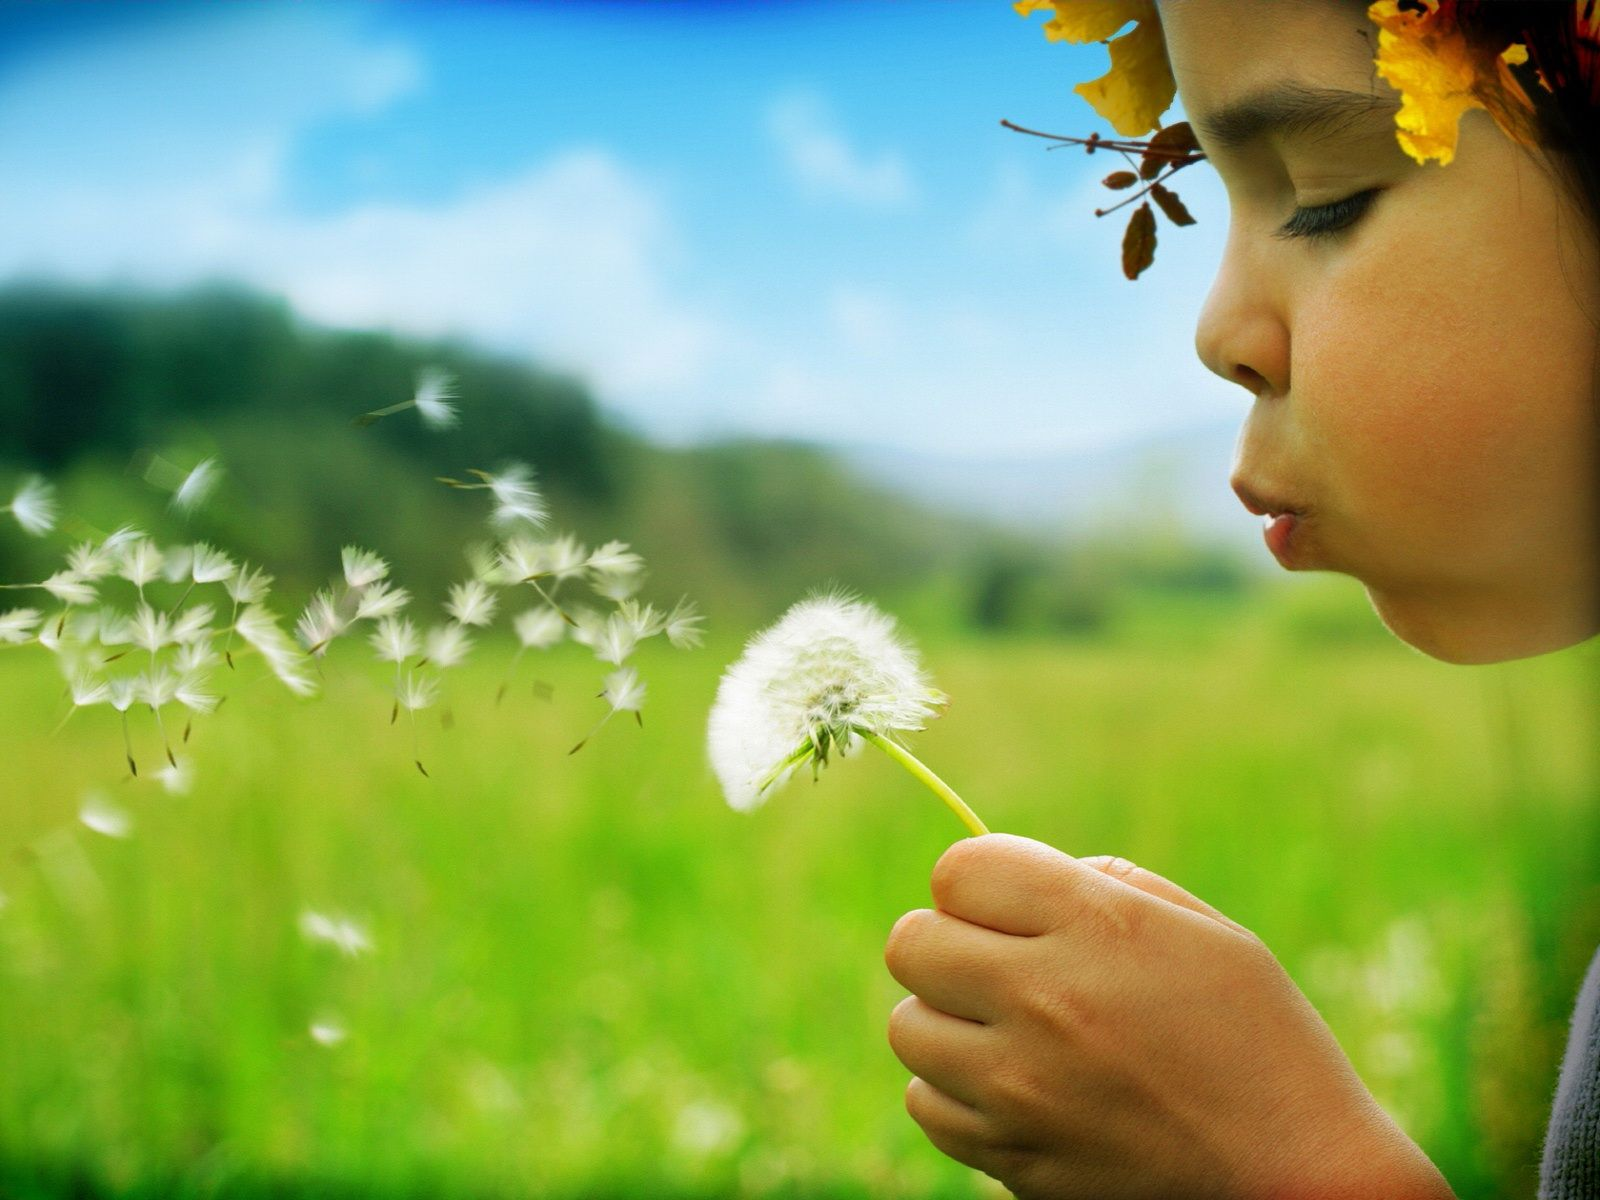 Undefined Kids Pic Wallpapers 49 Wallpapers